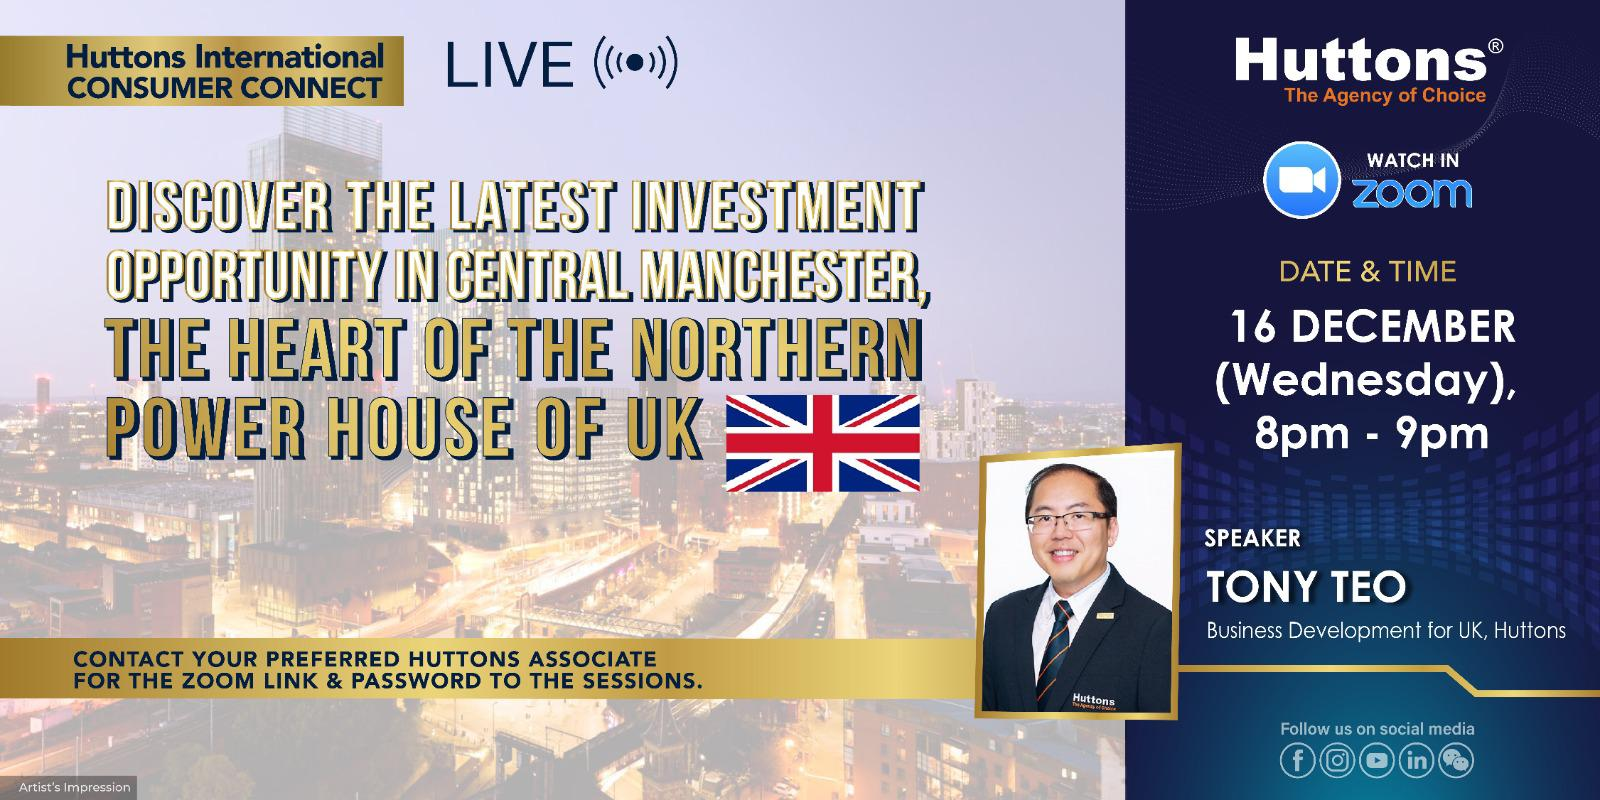 Huttons International Consumer Connect - Manchester (The Viadux)